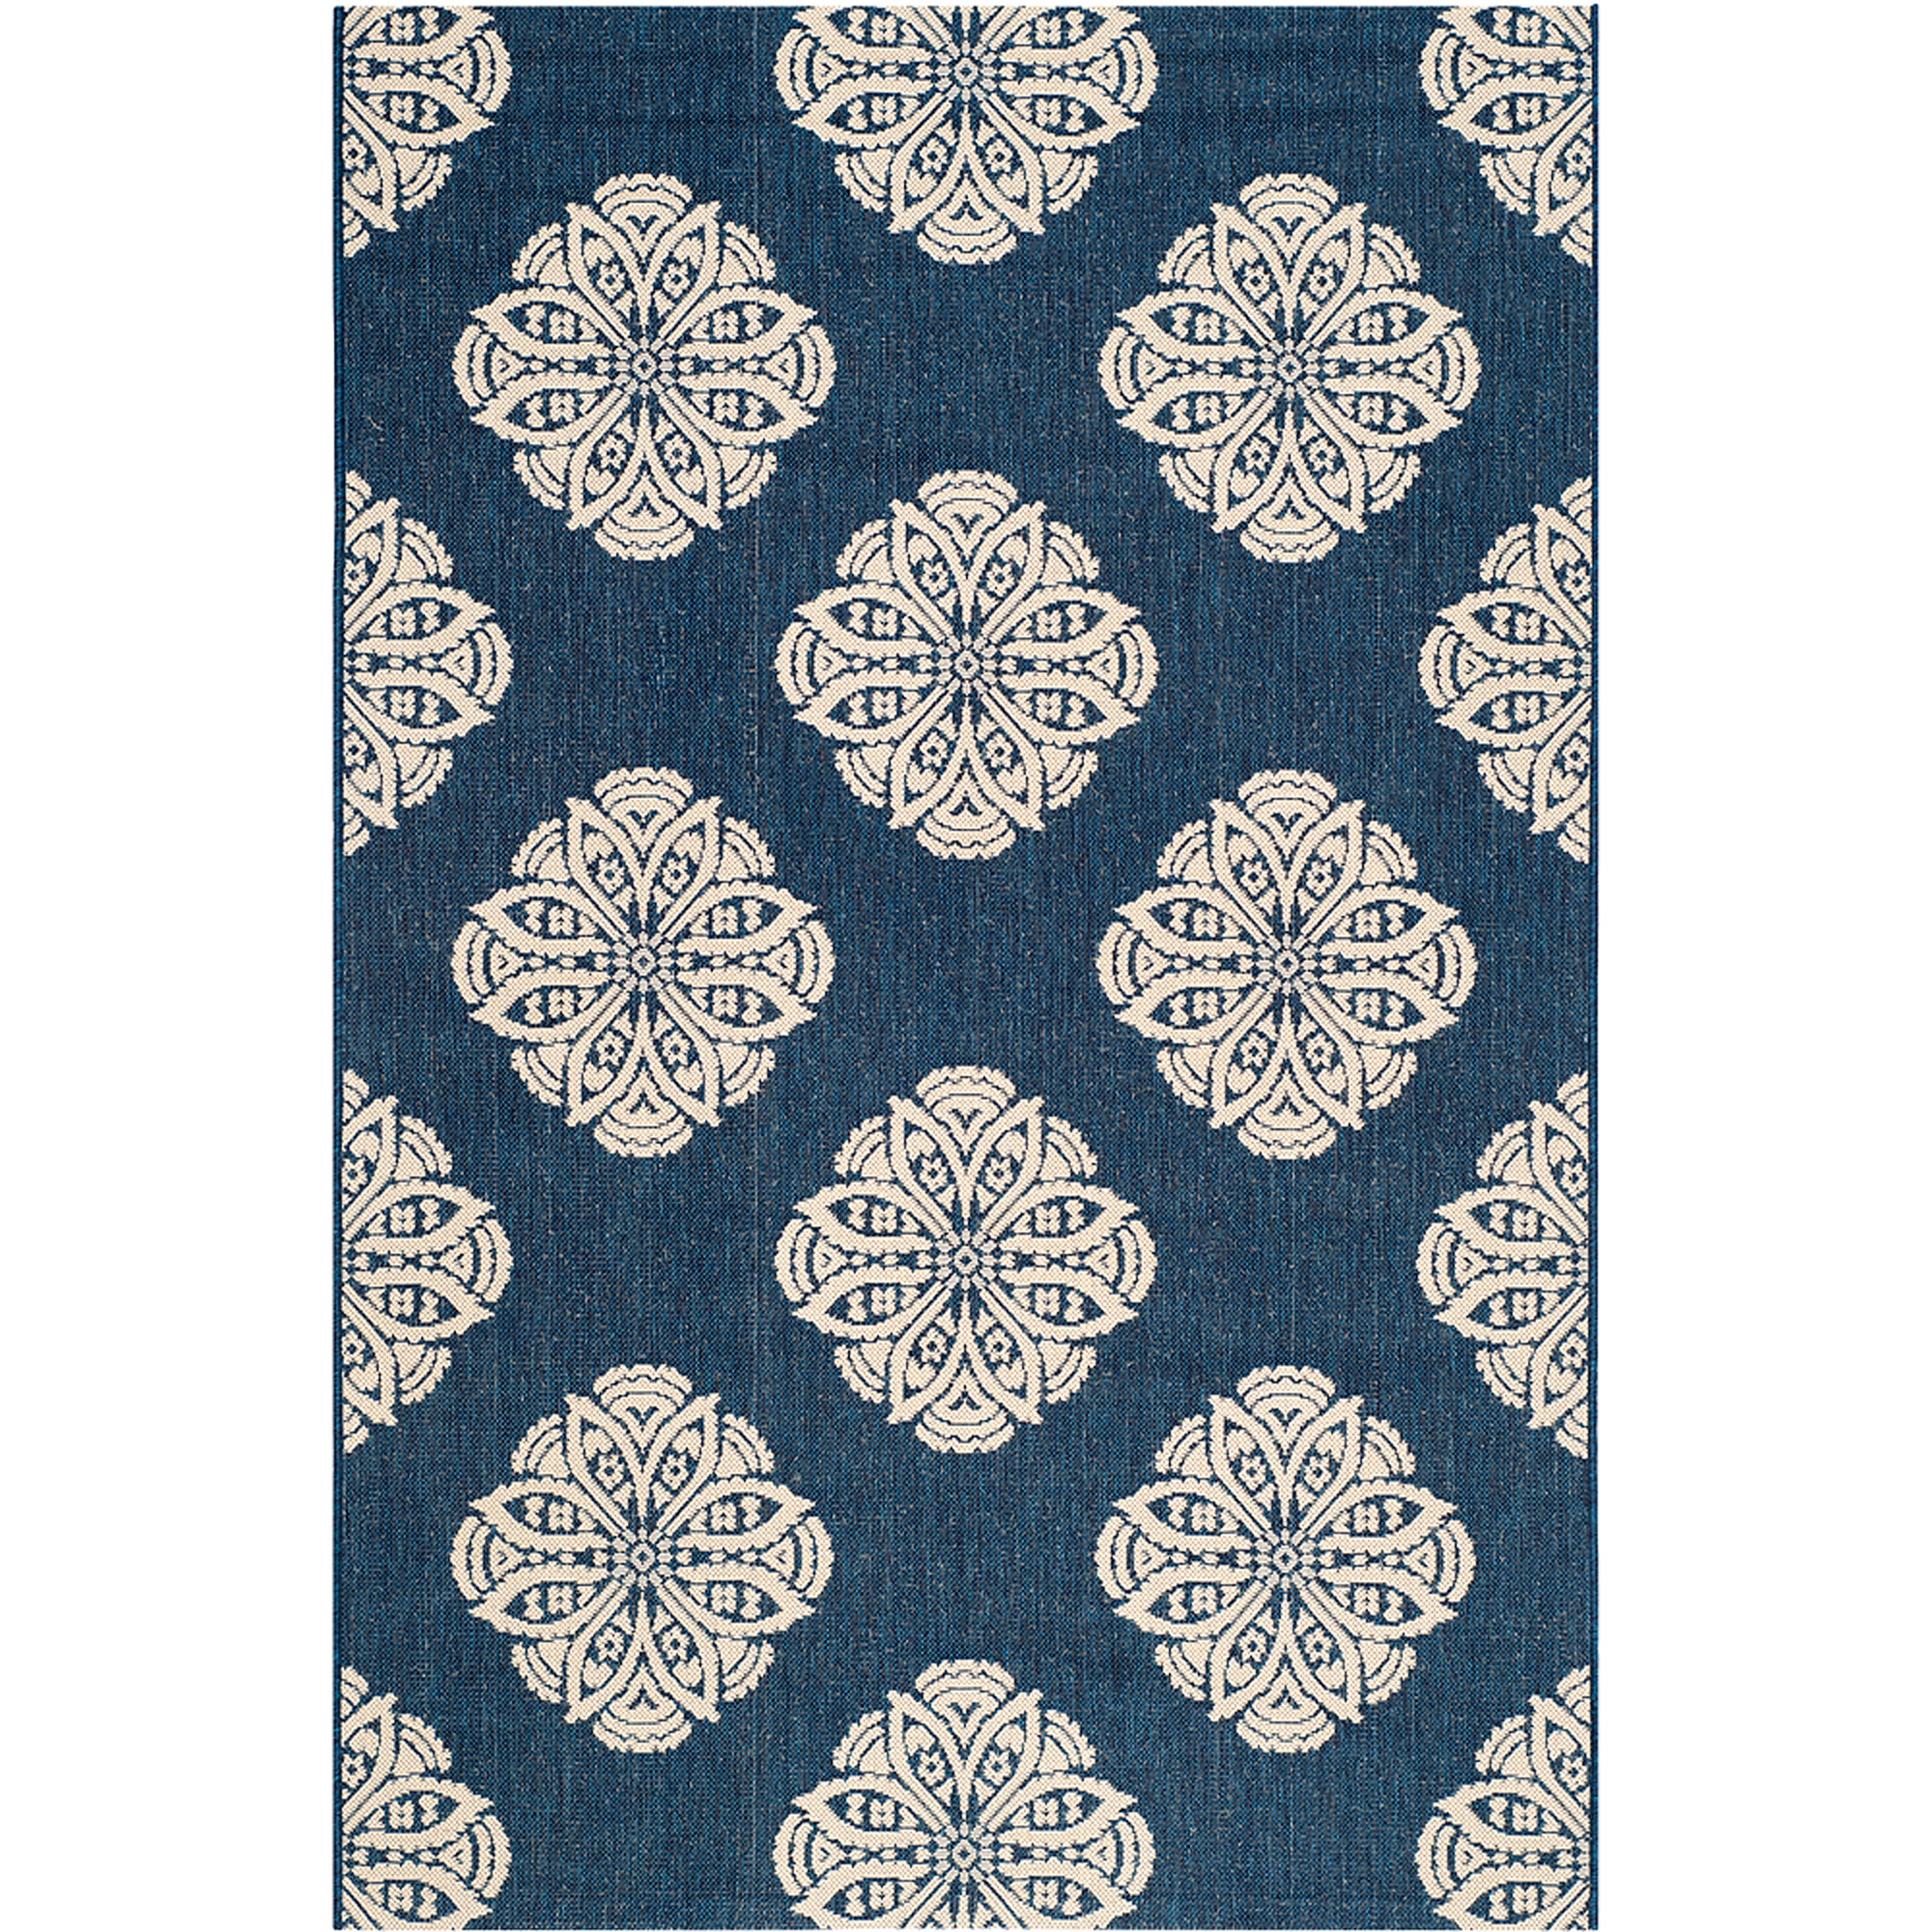 Better Homes And Gardens Medallion Indoor/Outdoor Area Rug   Walmart.com